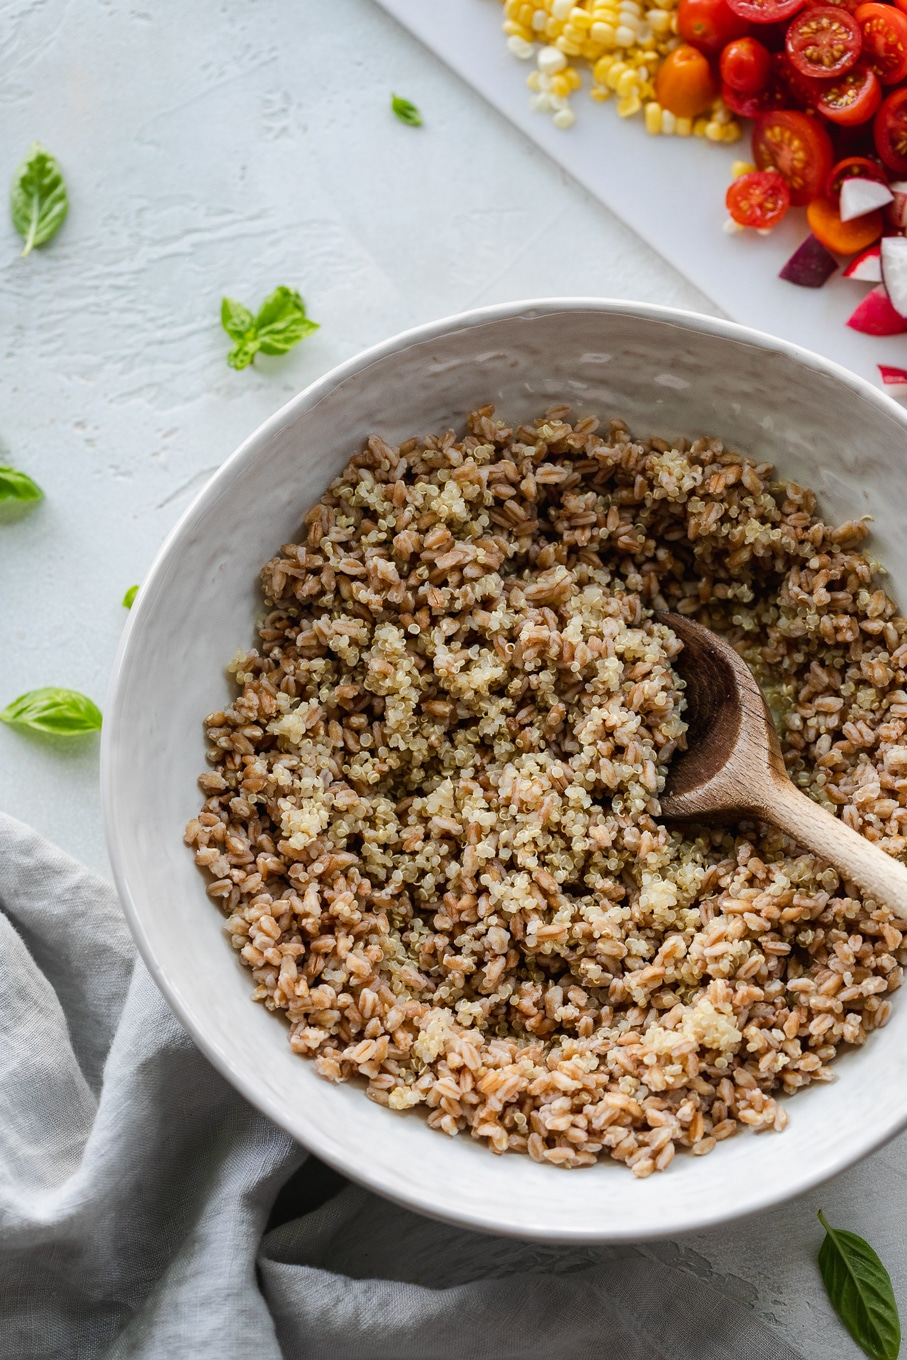 Overhead shot of a bowl of farro and quinoa